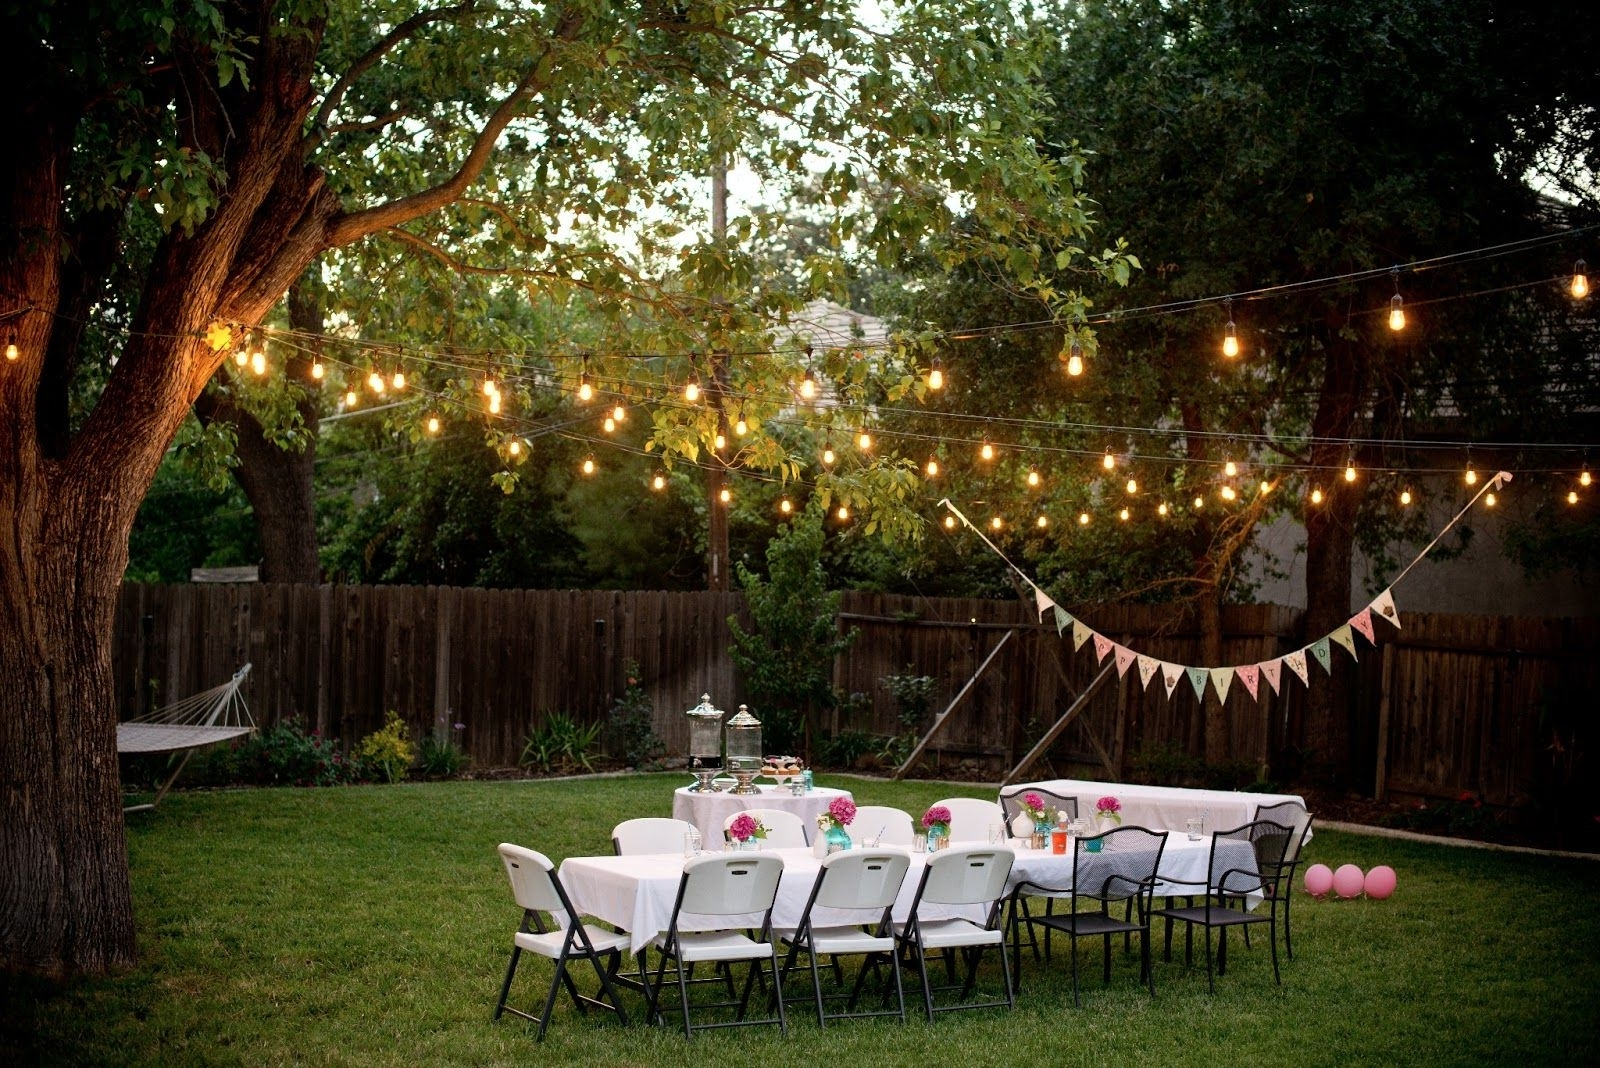 Modern Outdoor Patio String Lights : Outdoor Furniture – How To Make Within Most Up To Date Modern Outdoor String Lights (View 9 of 20)